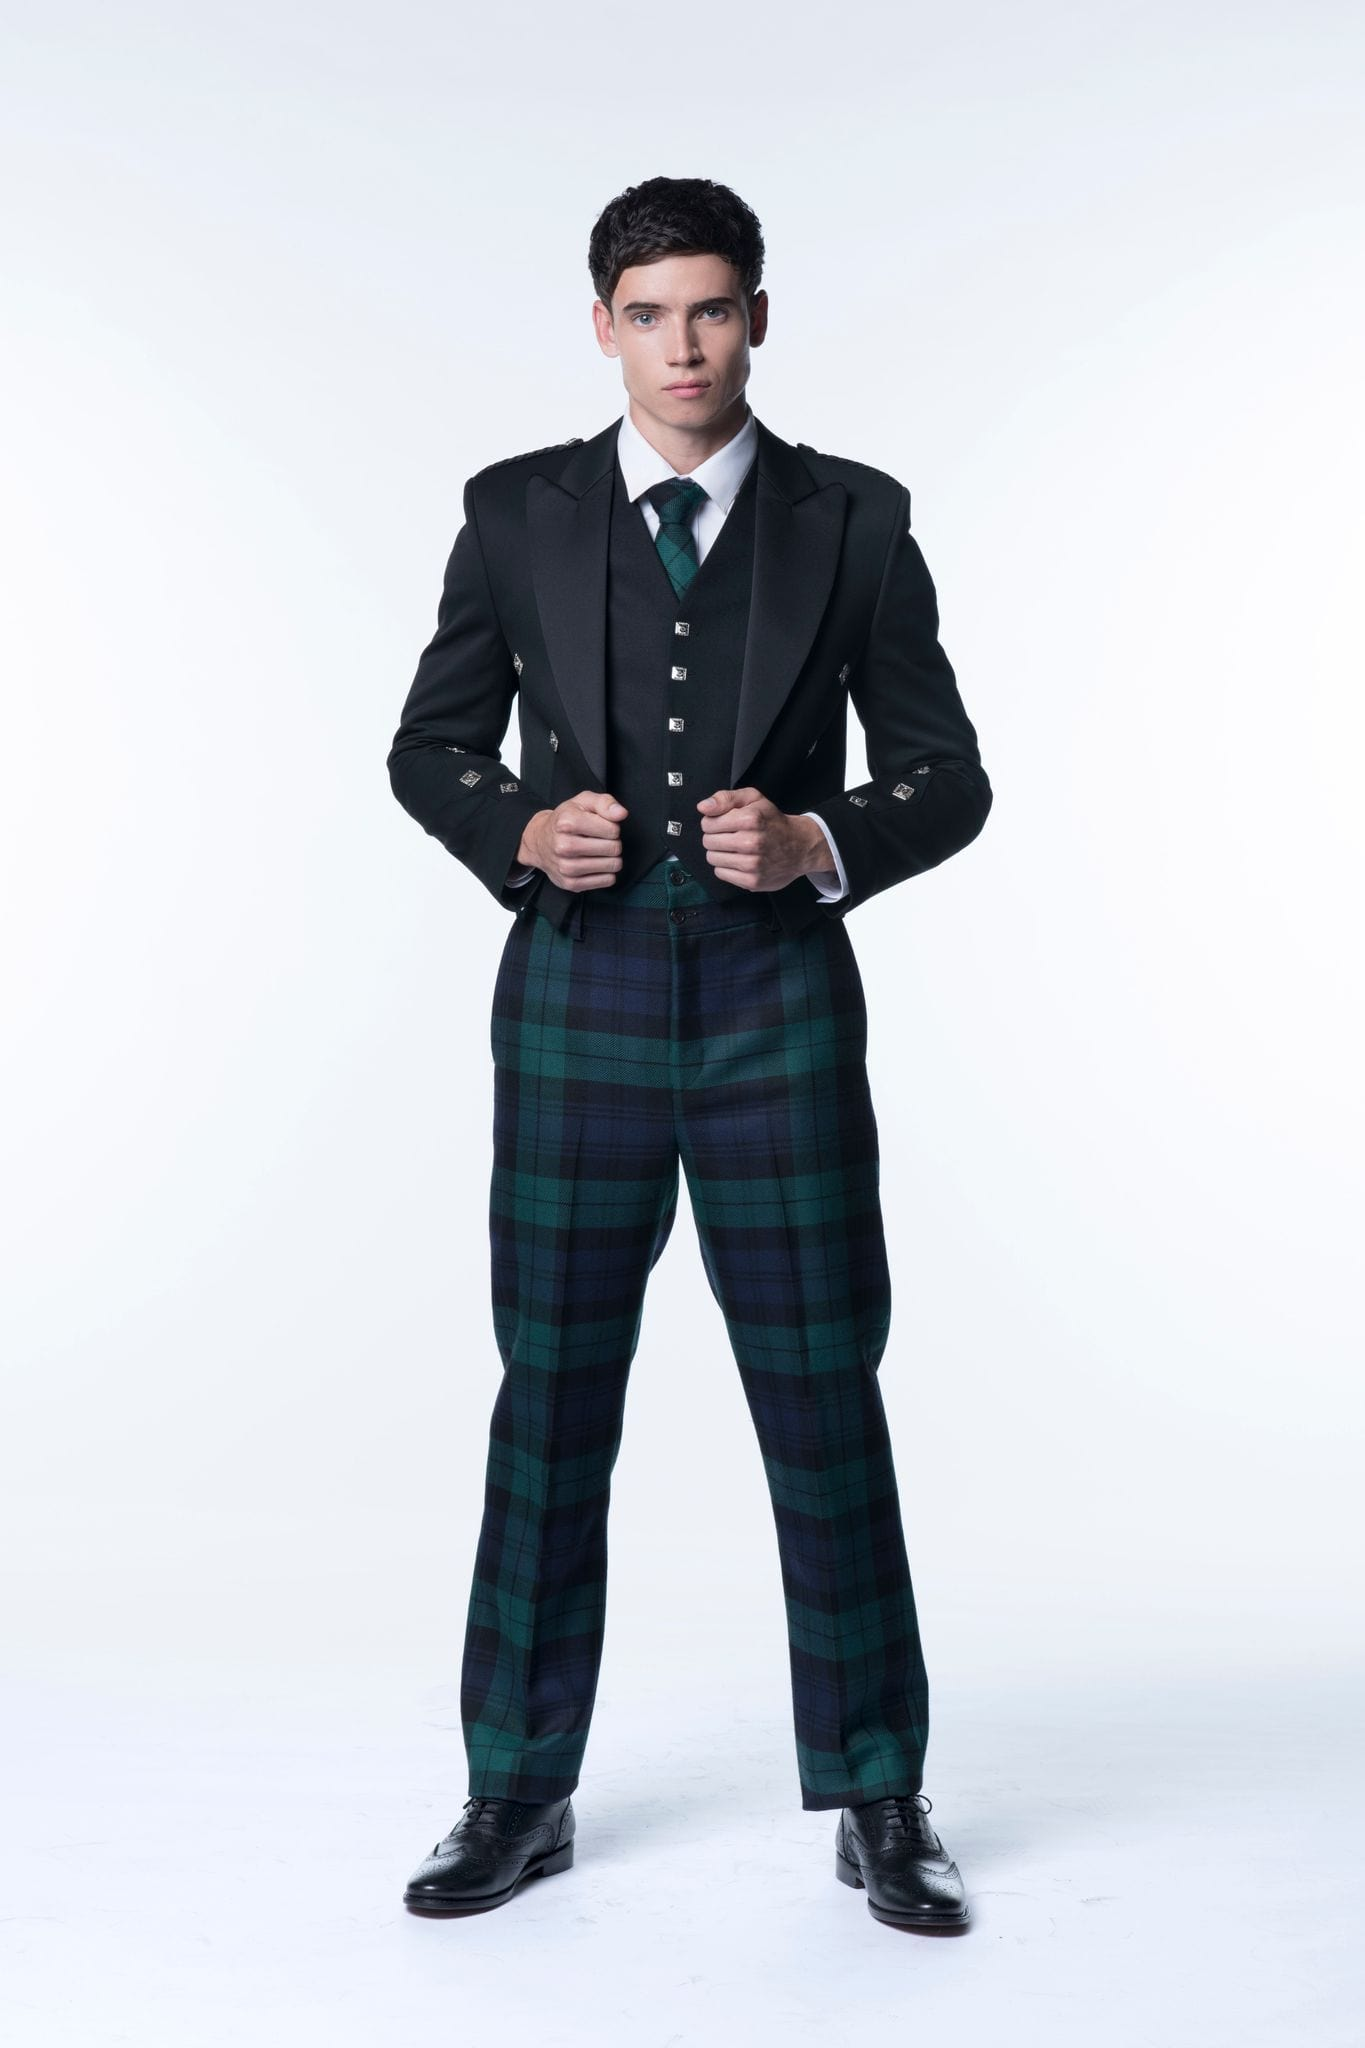 macgregorandmacduff Trousers & Trews Tartan Trews Package - Choose Your Tartan